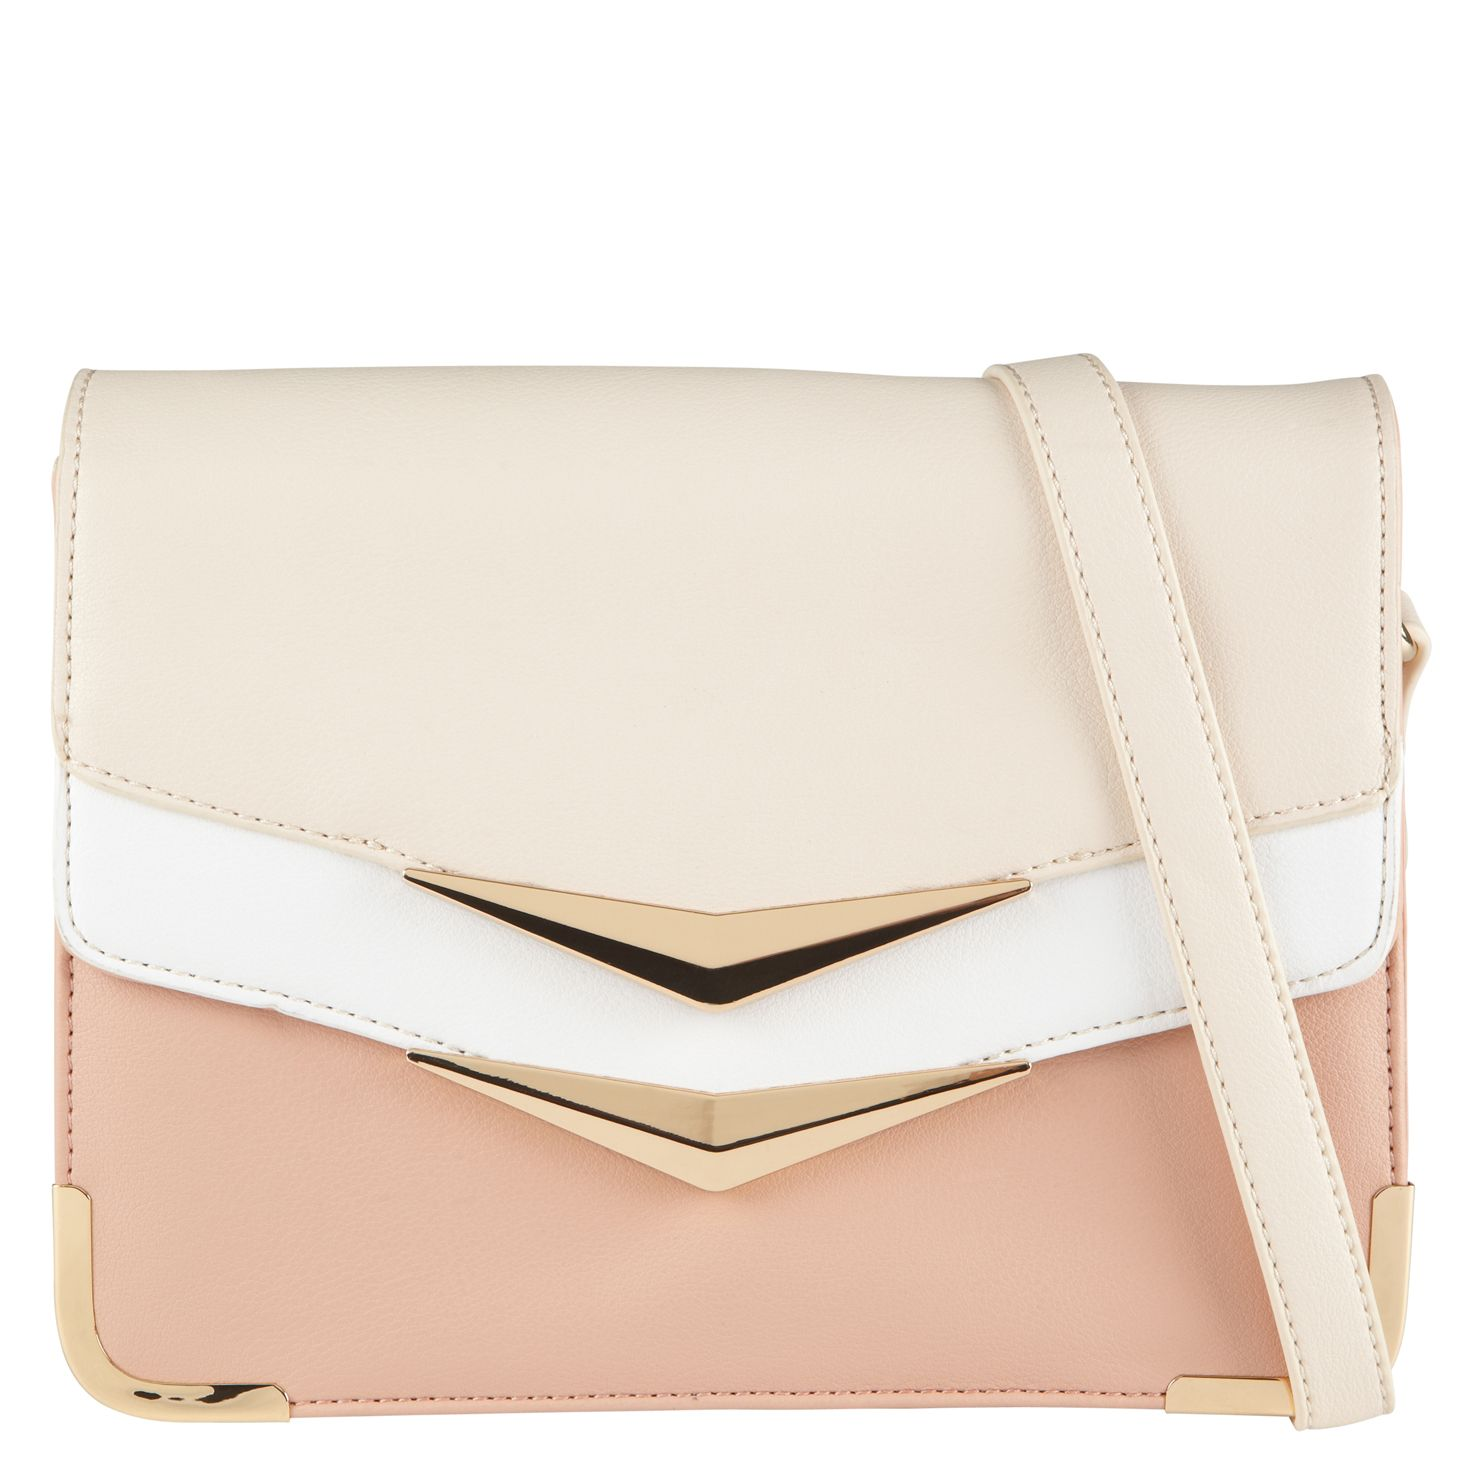 Vernonia cross body clutch